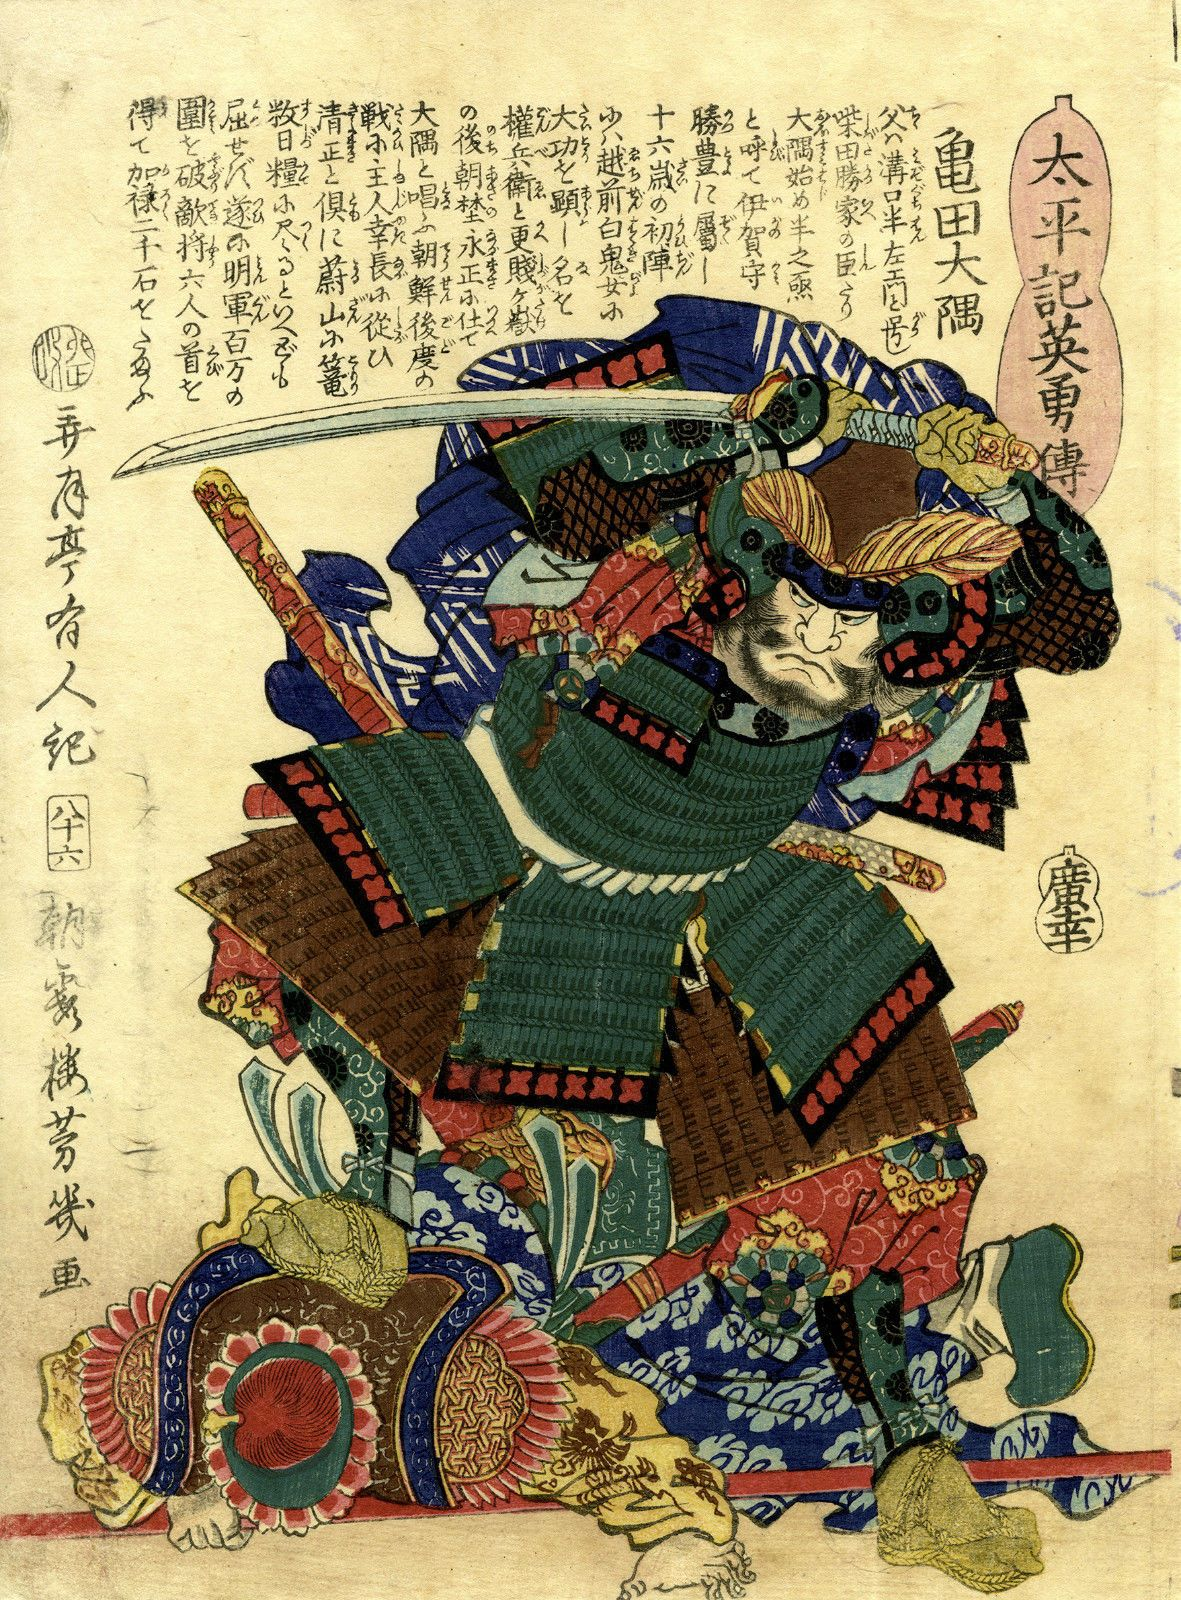 Rare Samurai Warrior Yoshiiku Japanese Woodblock